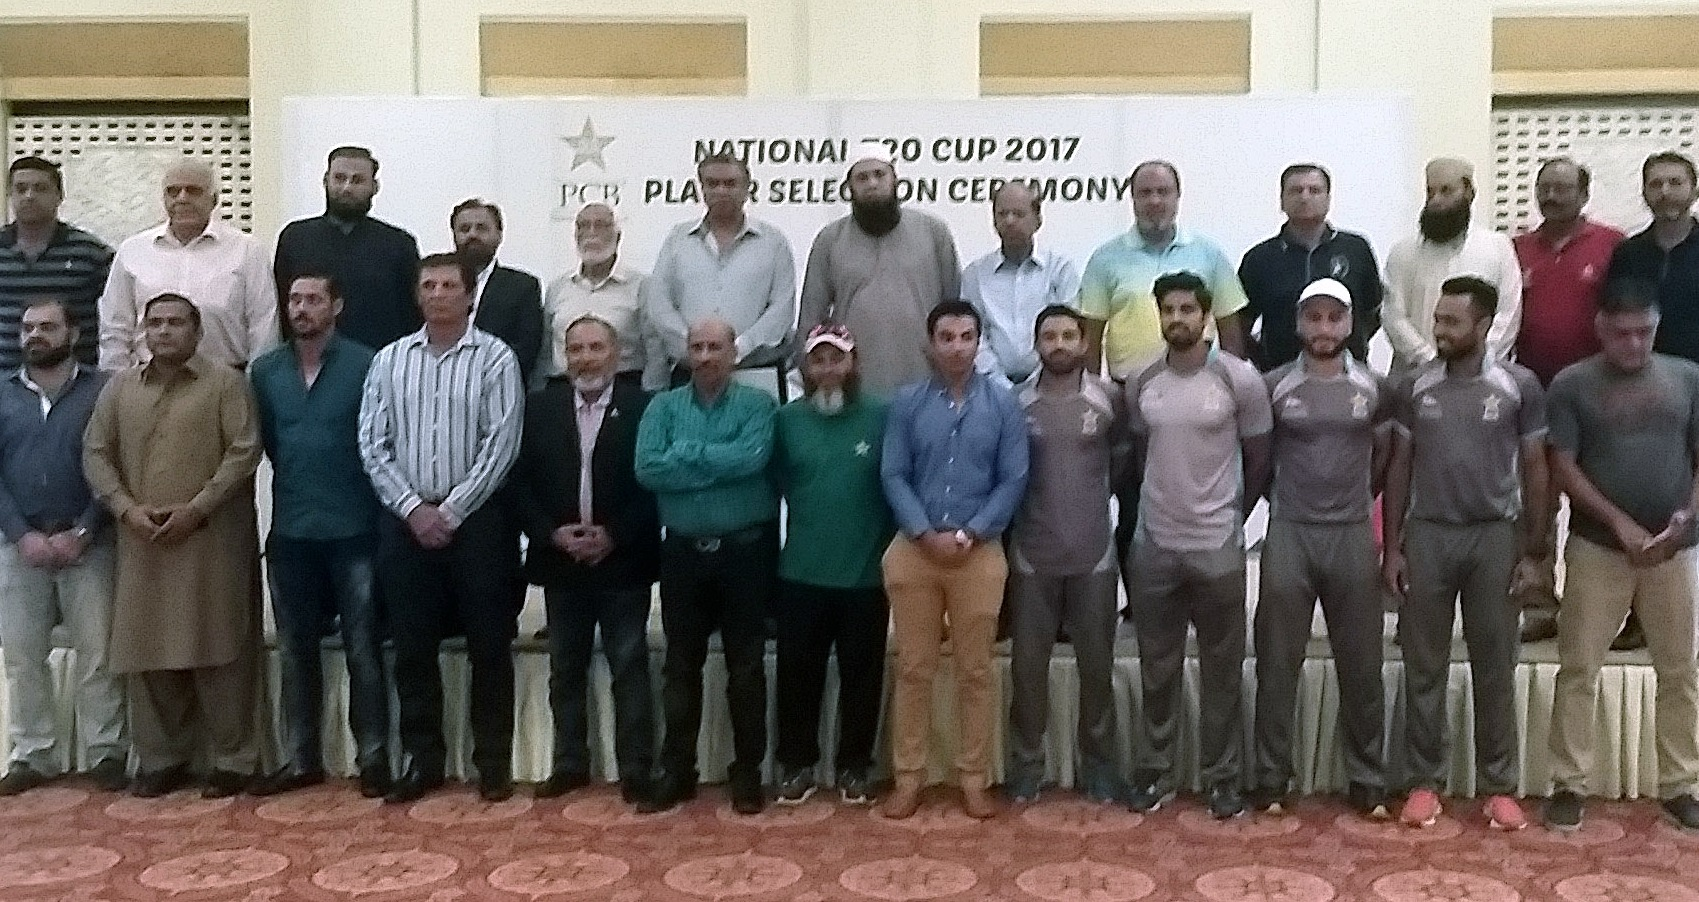 National T20 Cup postponed, to be held from 4th to 19th November